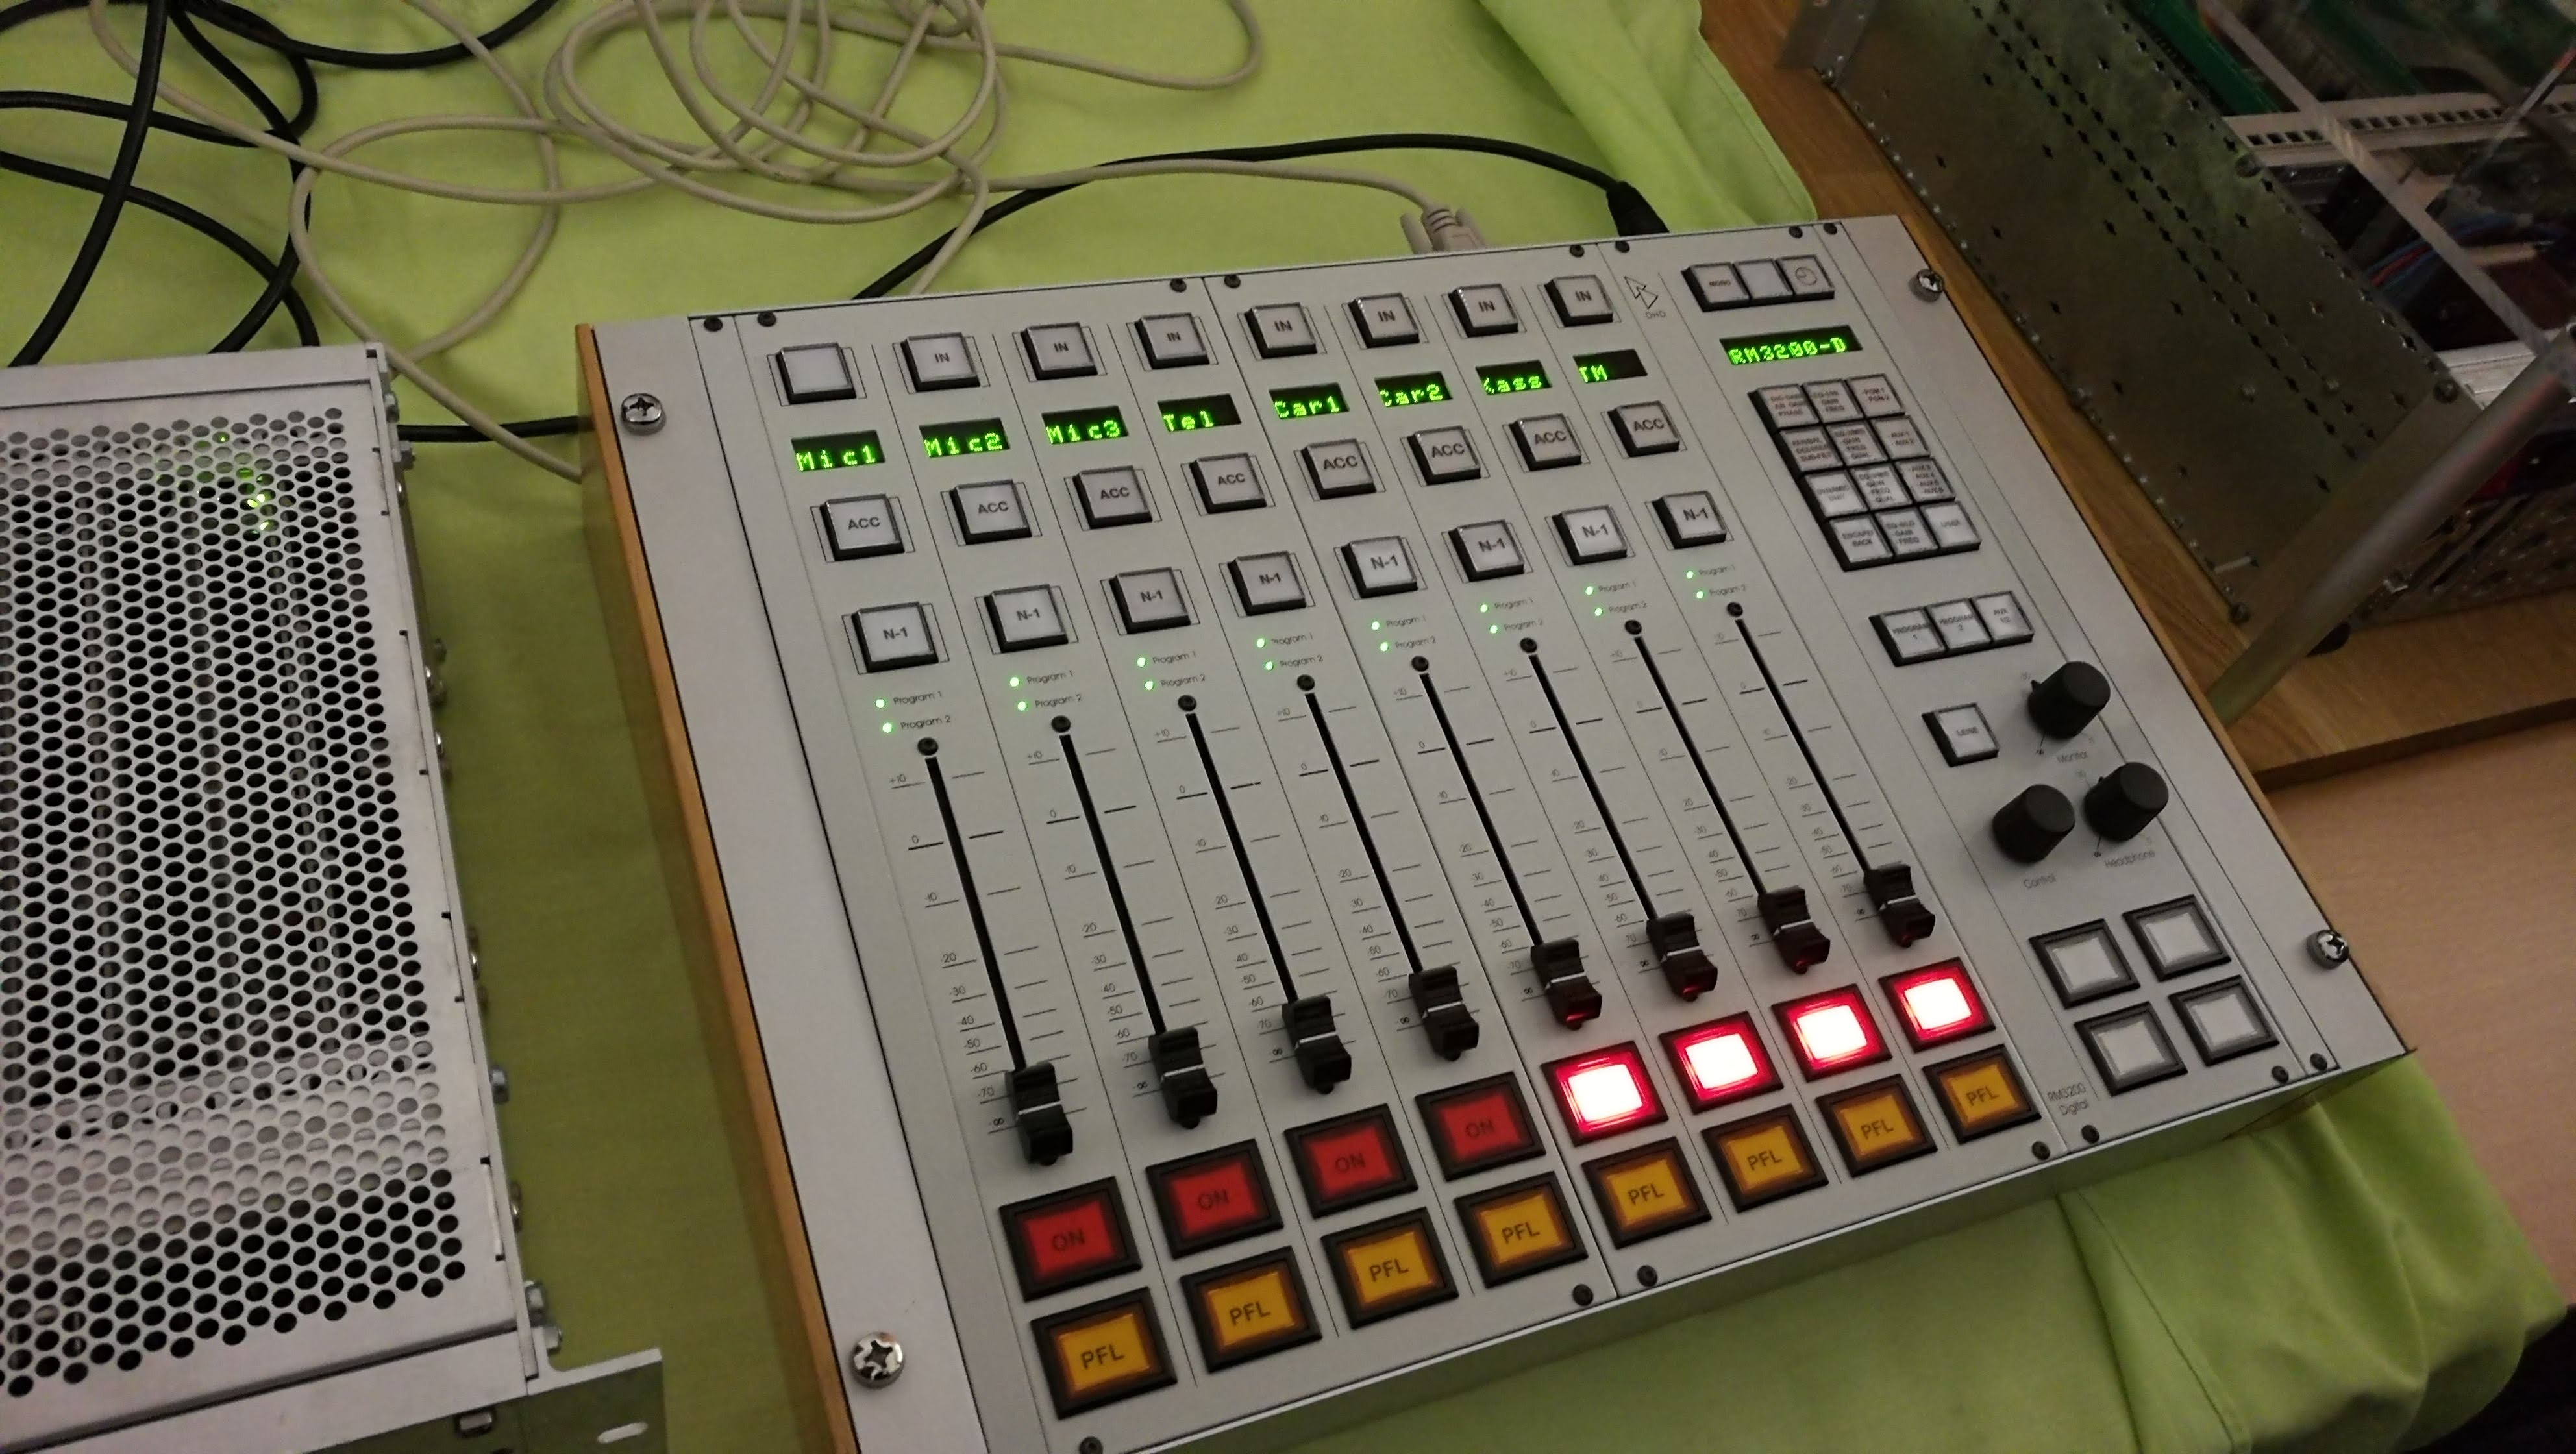 RM3200_dhd